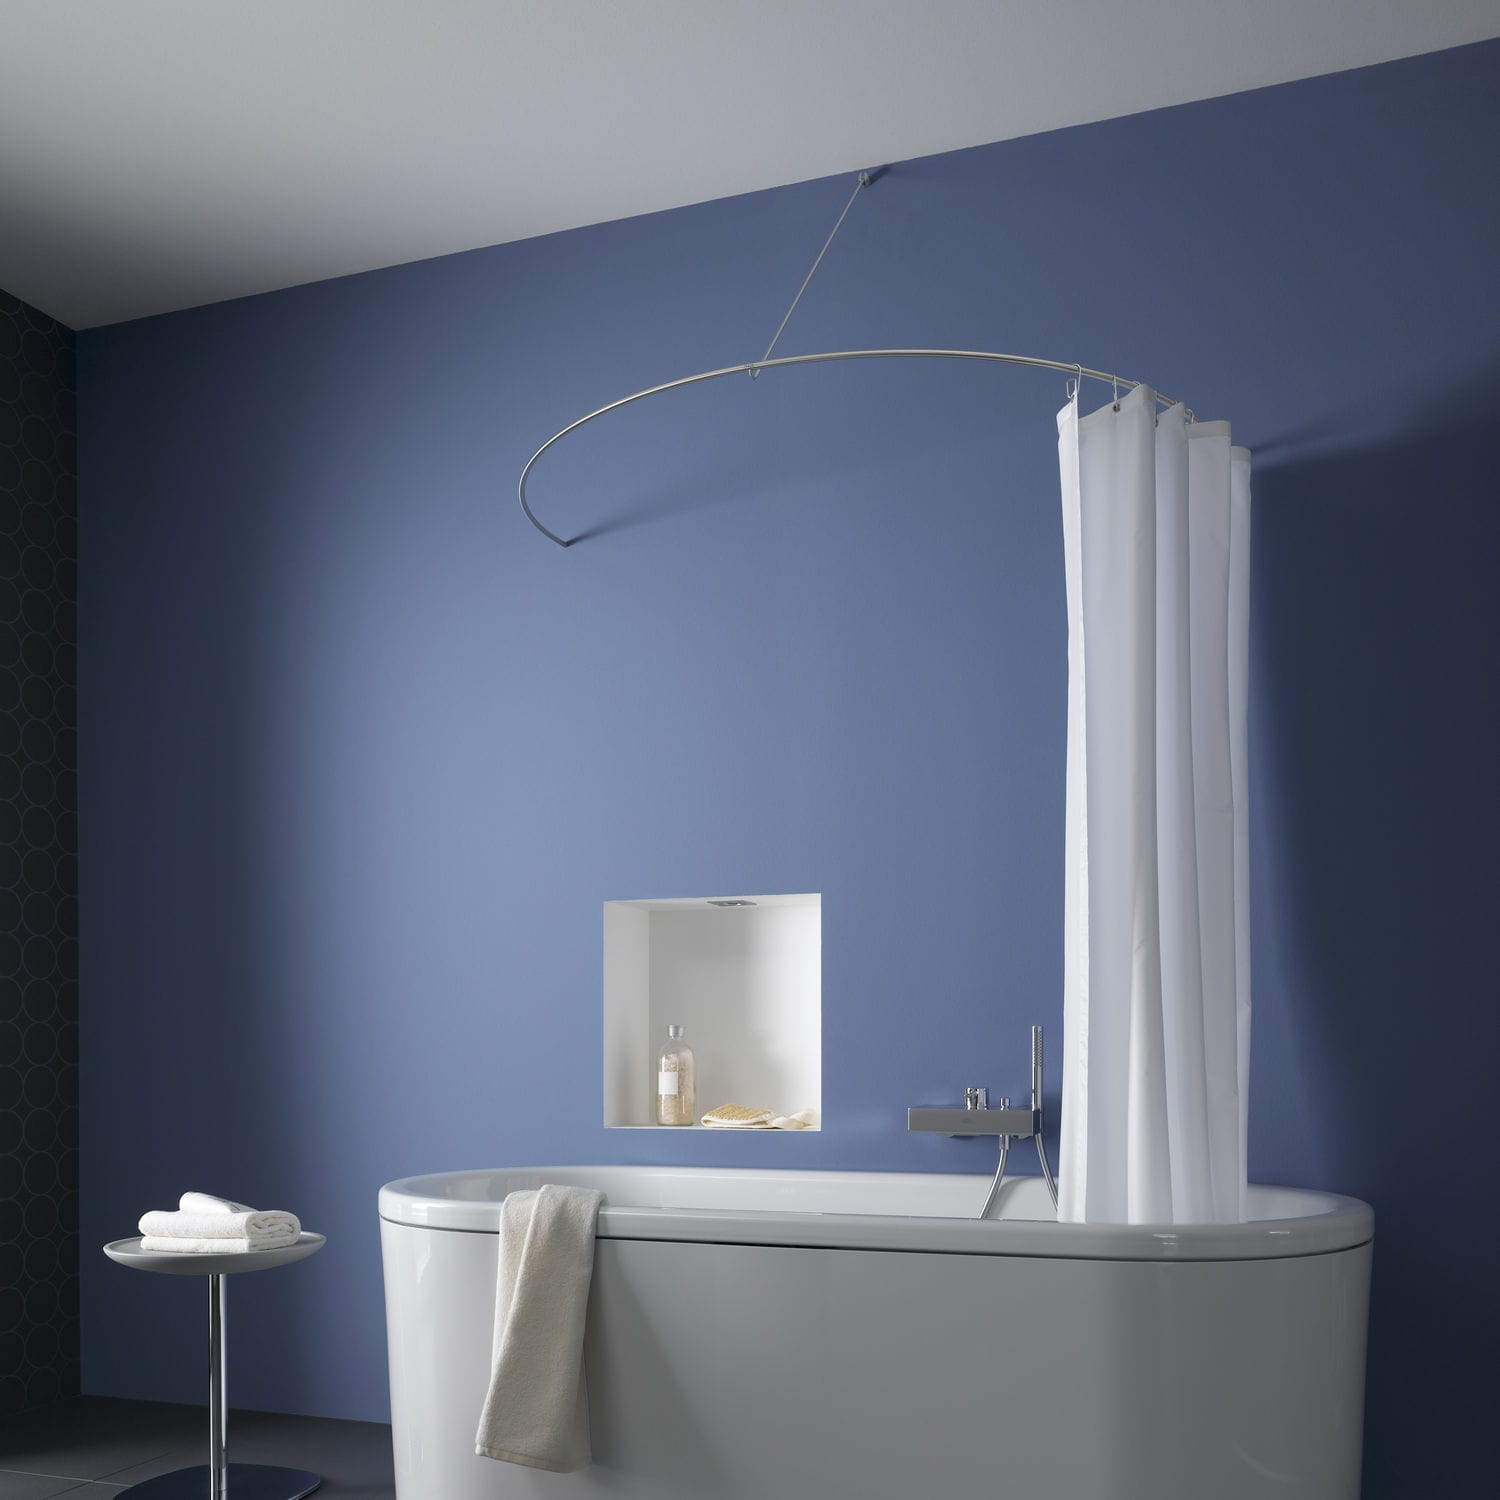 Stainless steel shower curtain bar / curved - DR700HW - PHOS Design ...